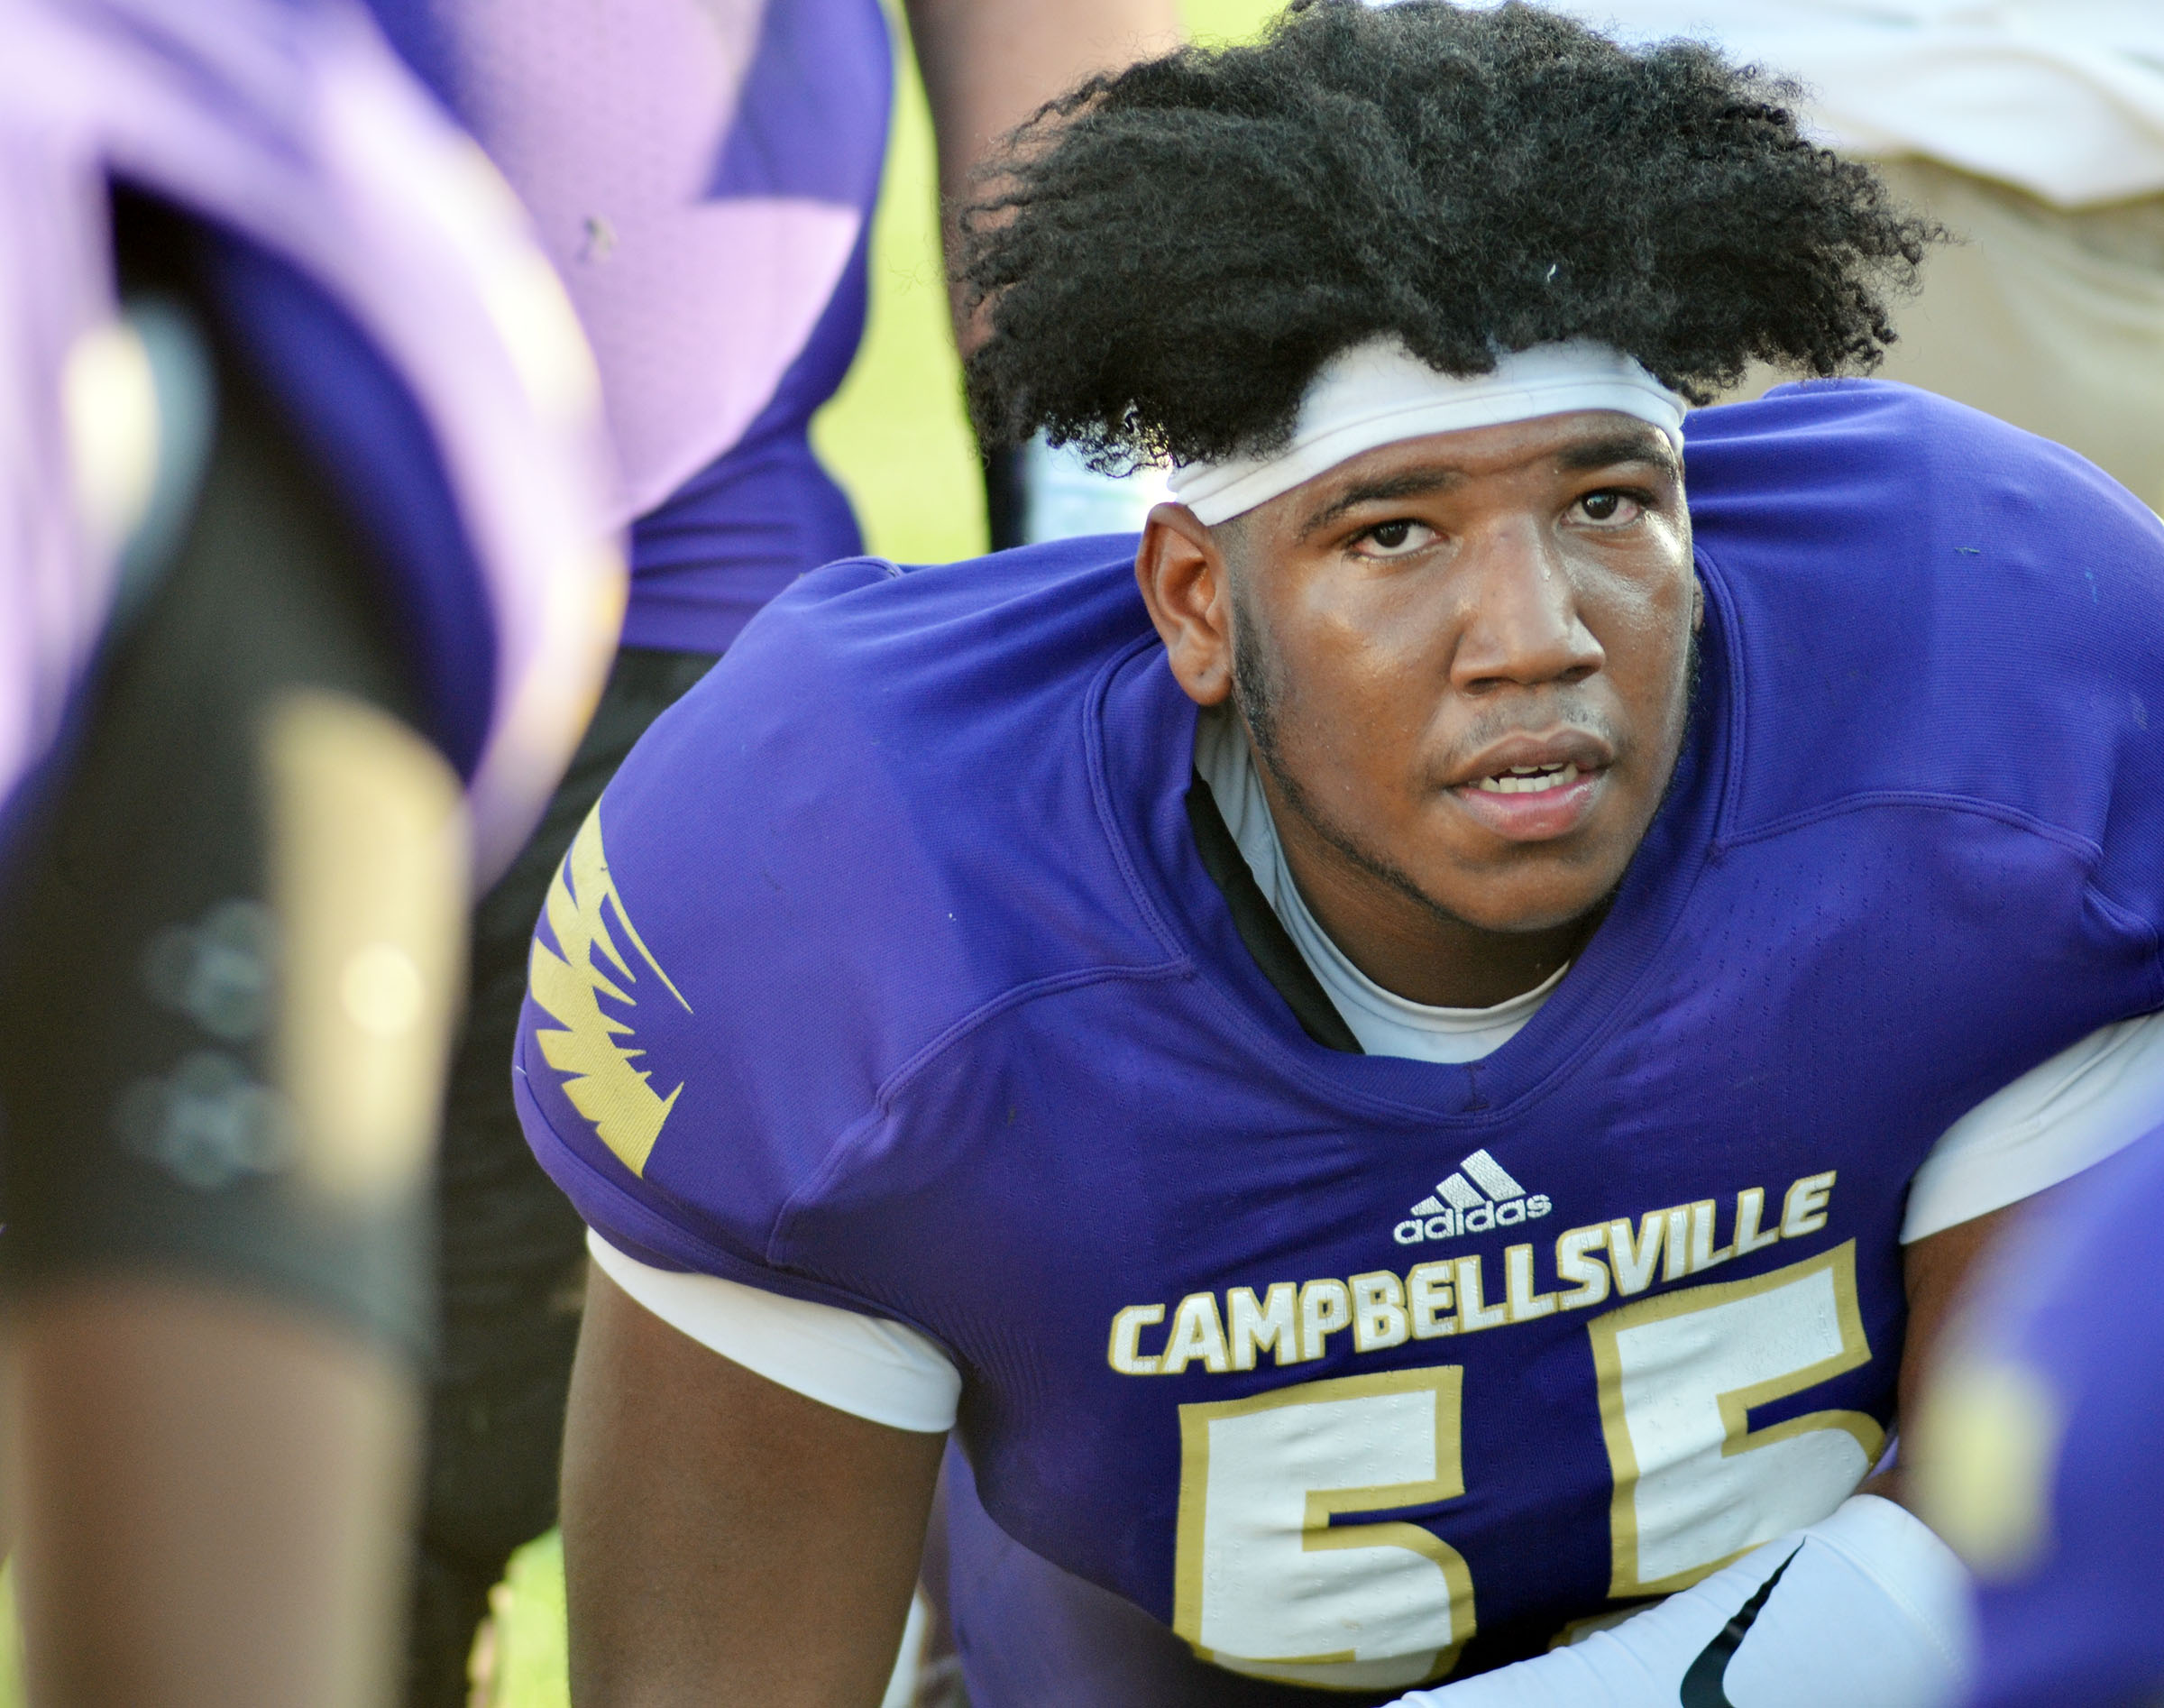 Campbellsville High School senior Micah Corley, No. 55 for the Eagles, will play for the Kentucky team in the Kentucky vs. Tennessee Border Bowl X on Saturday, Jan. 21, in Gatlinburg, Tenn.